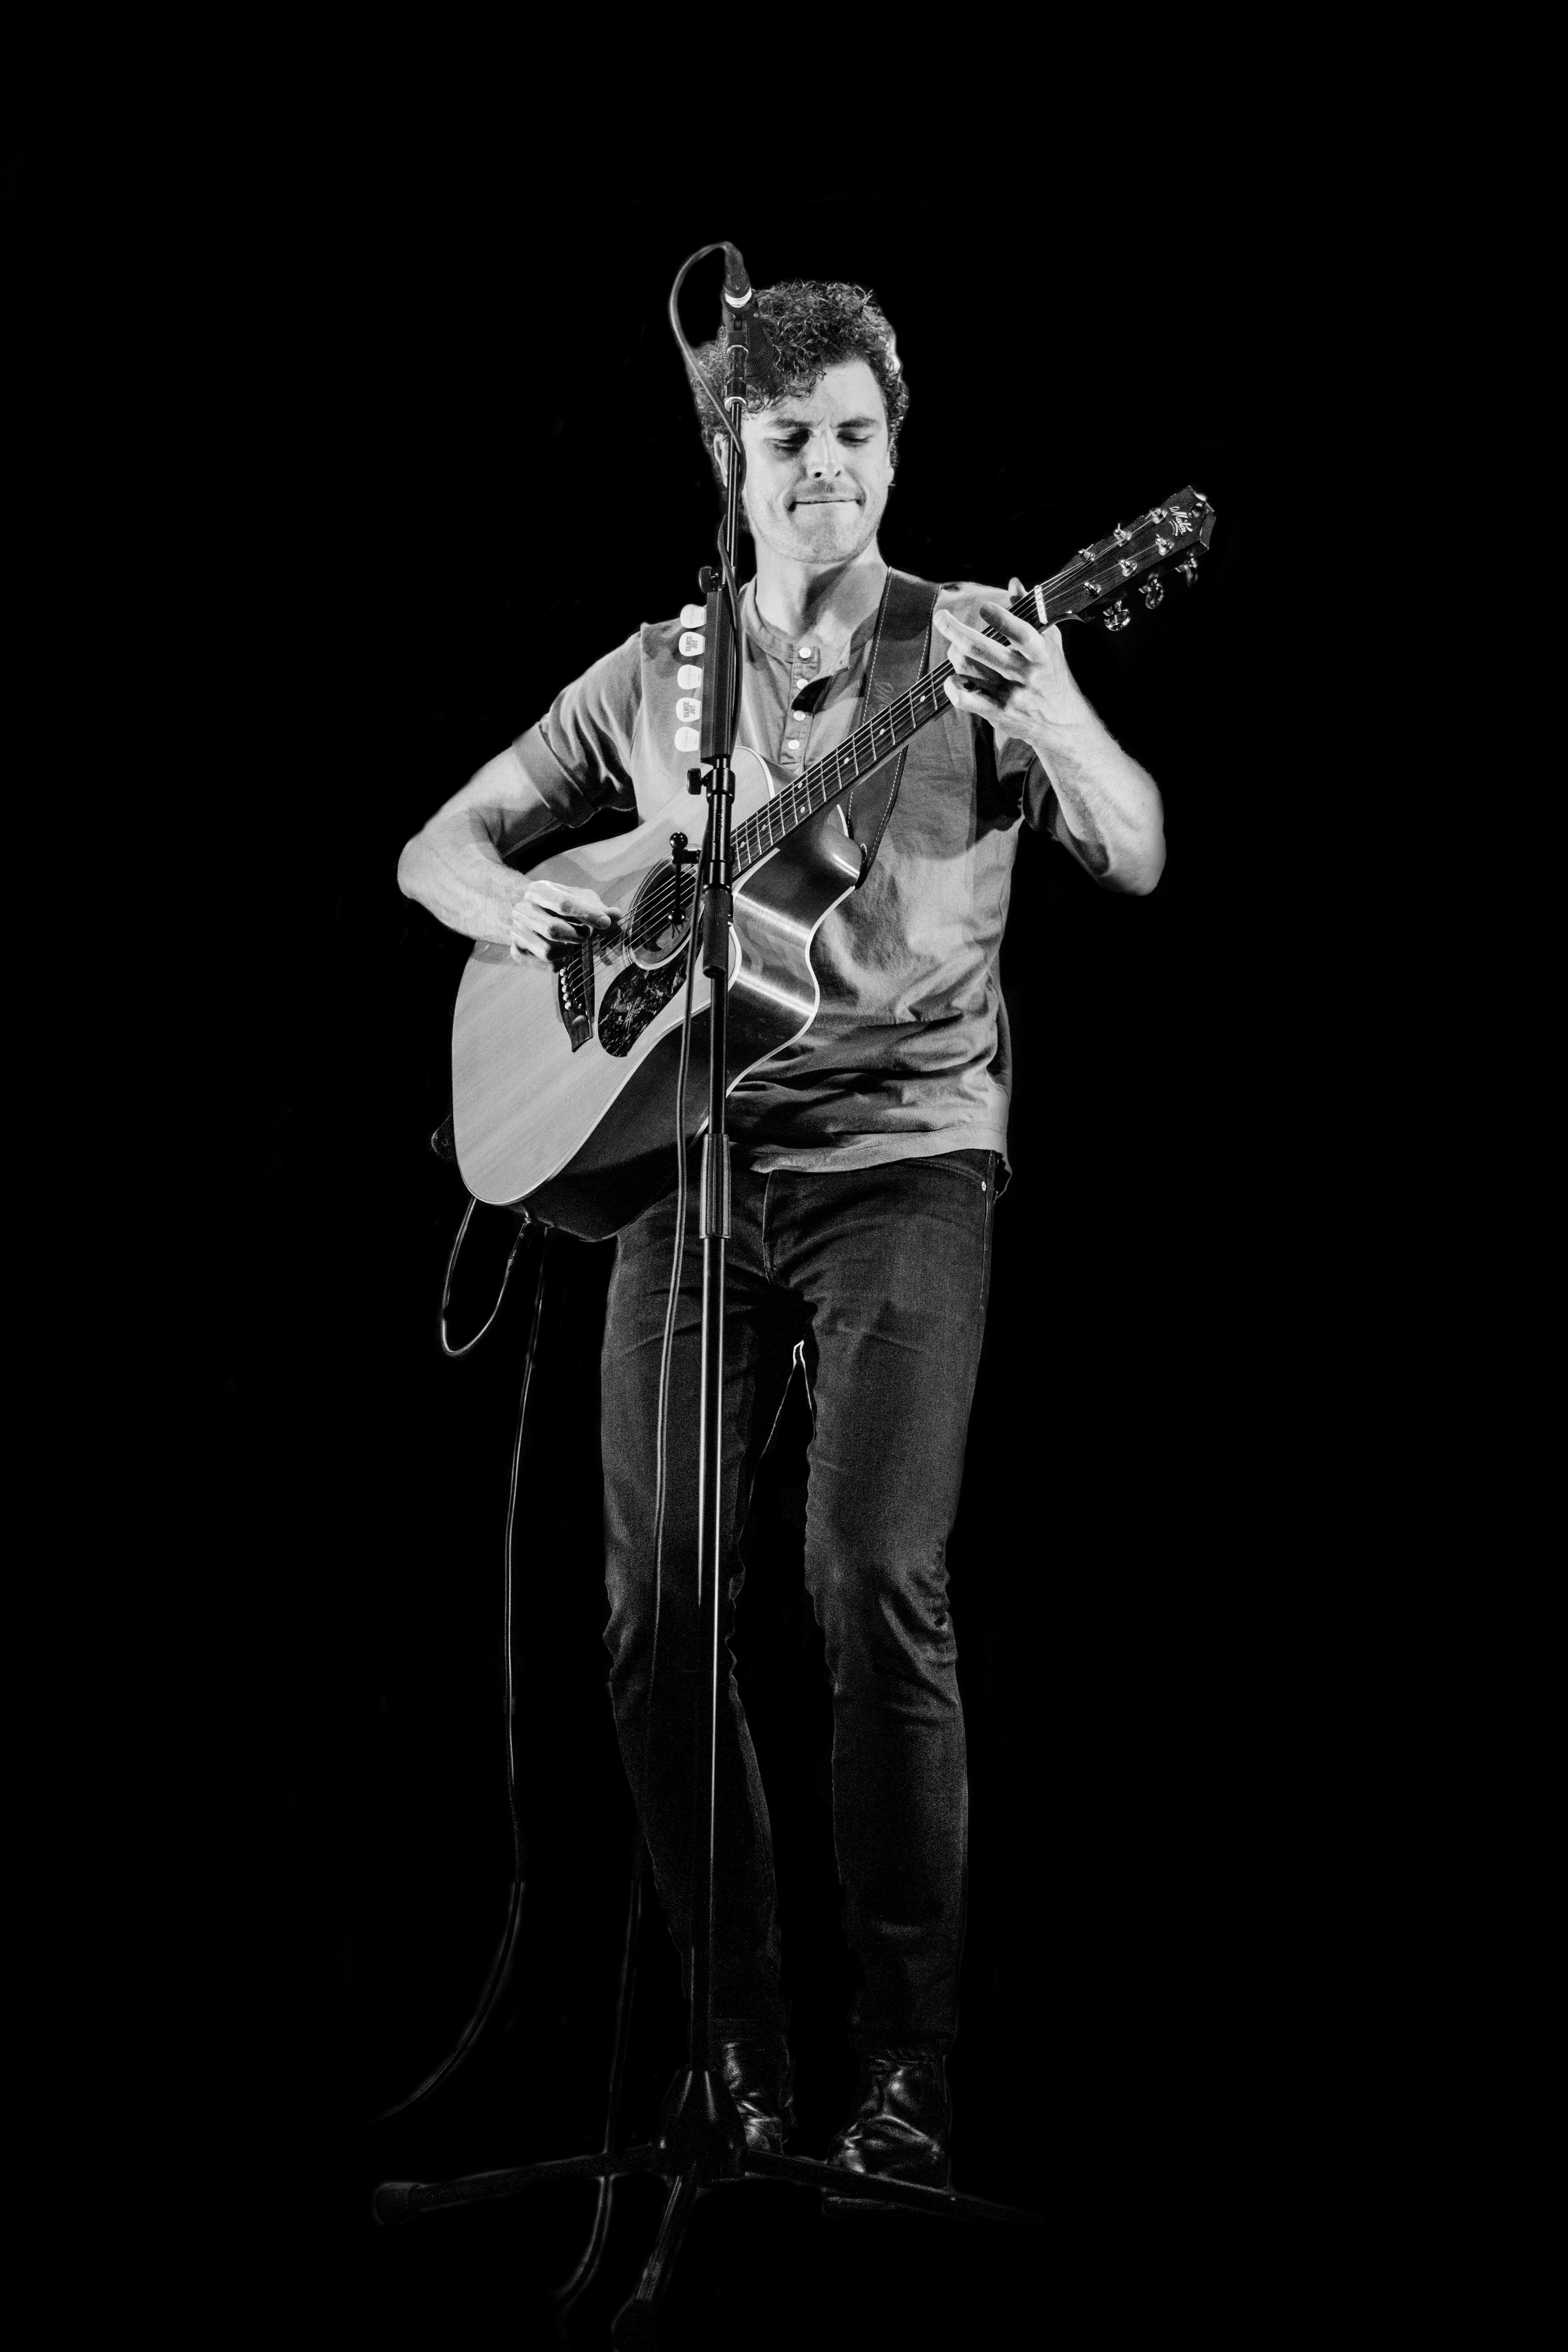 vance joy live review sydney photo credit statler willand savage thrills savagethrills 1